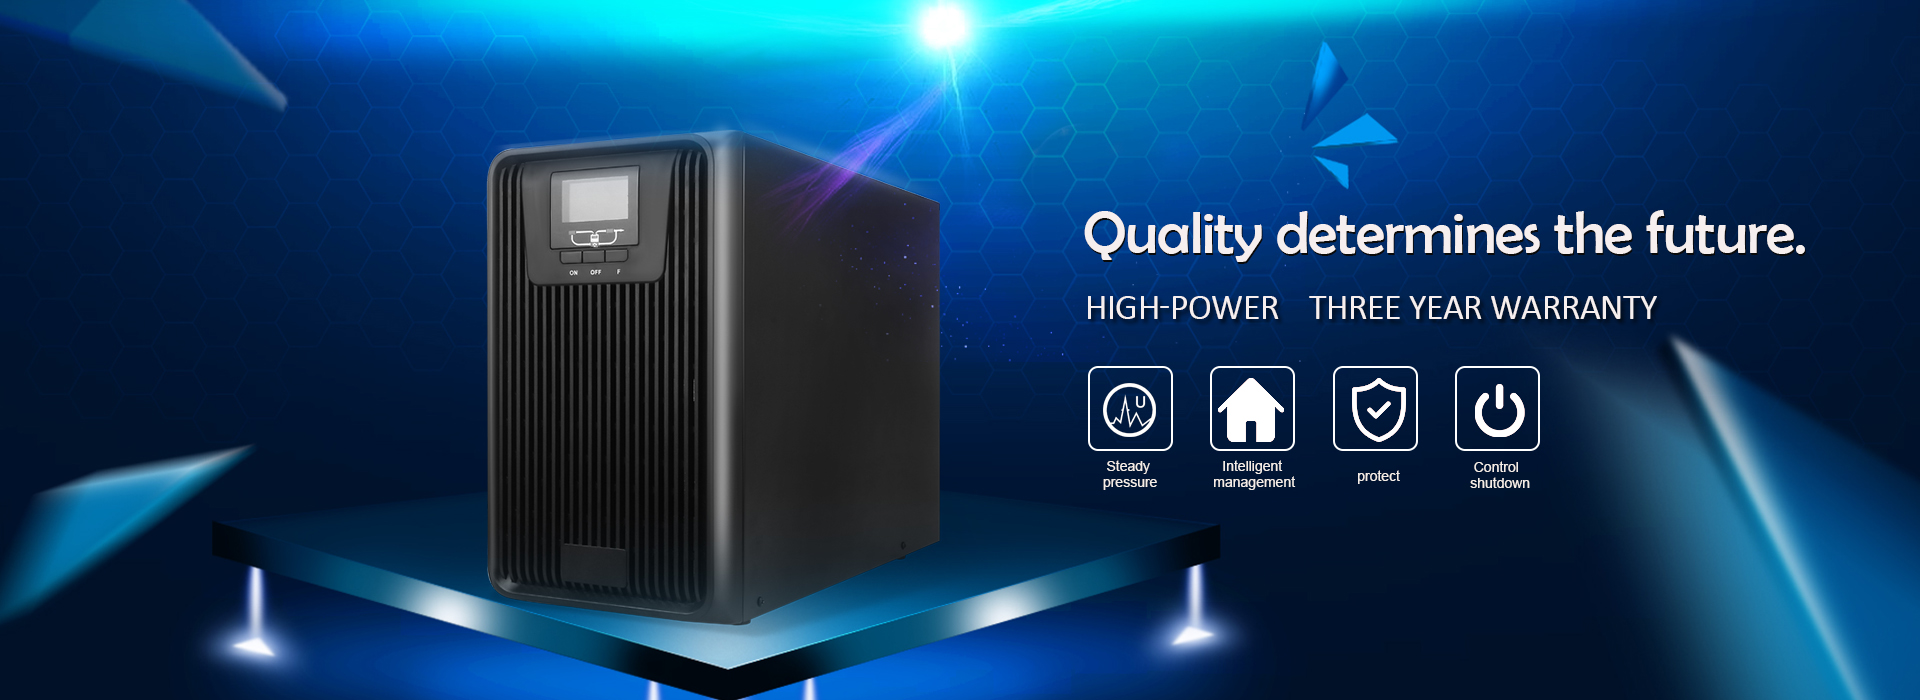 Cheng steady ups uninterruptible power supply